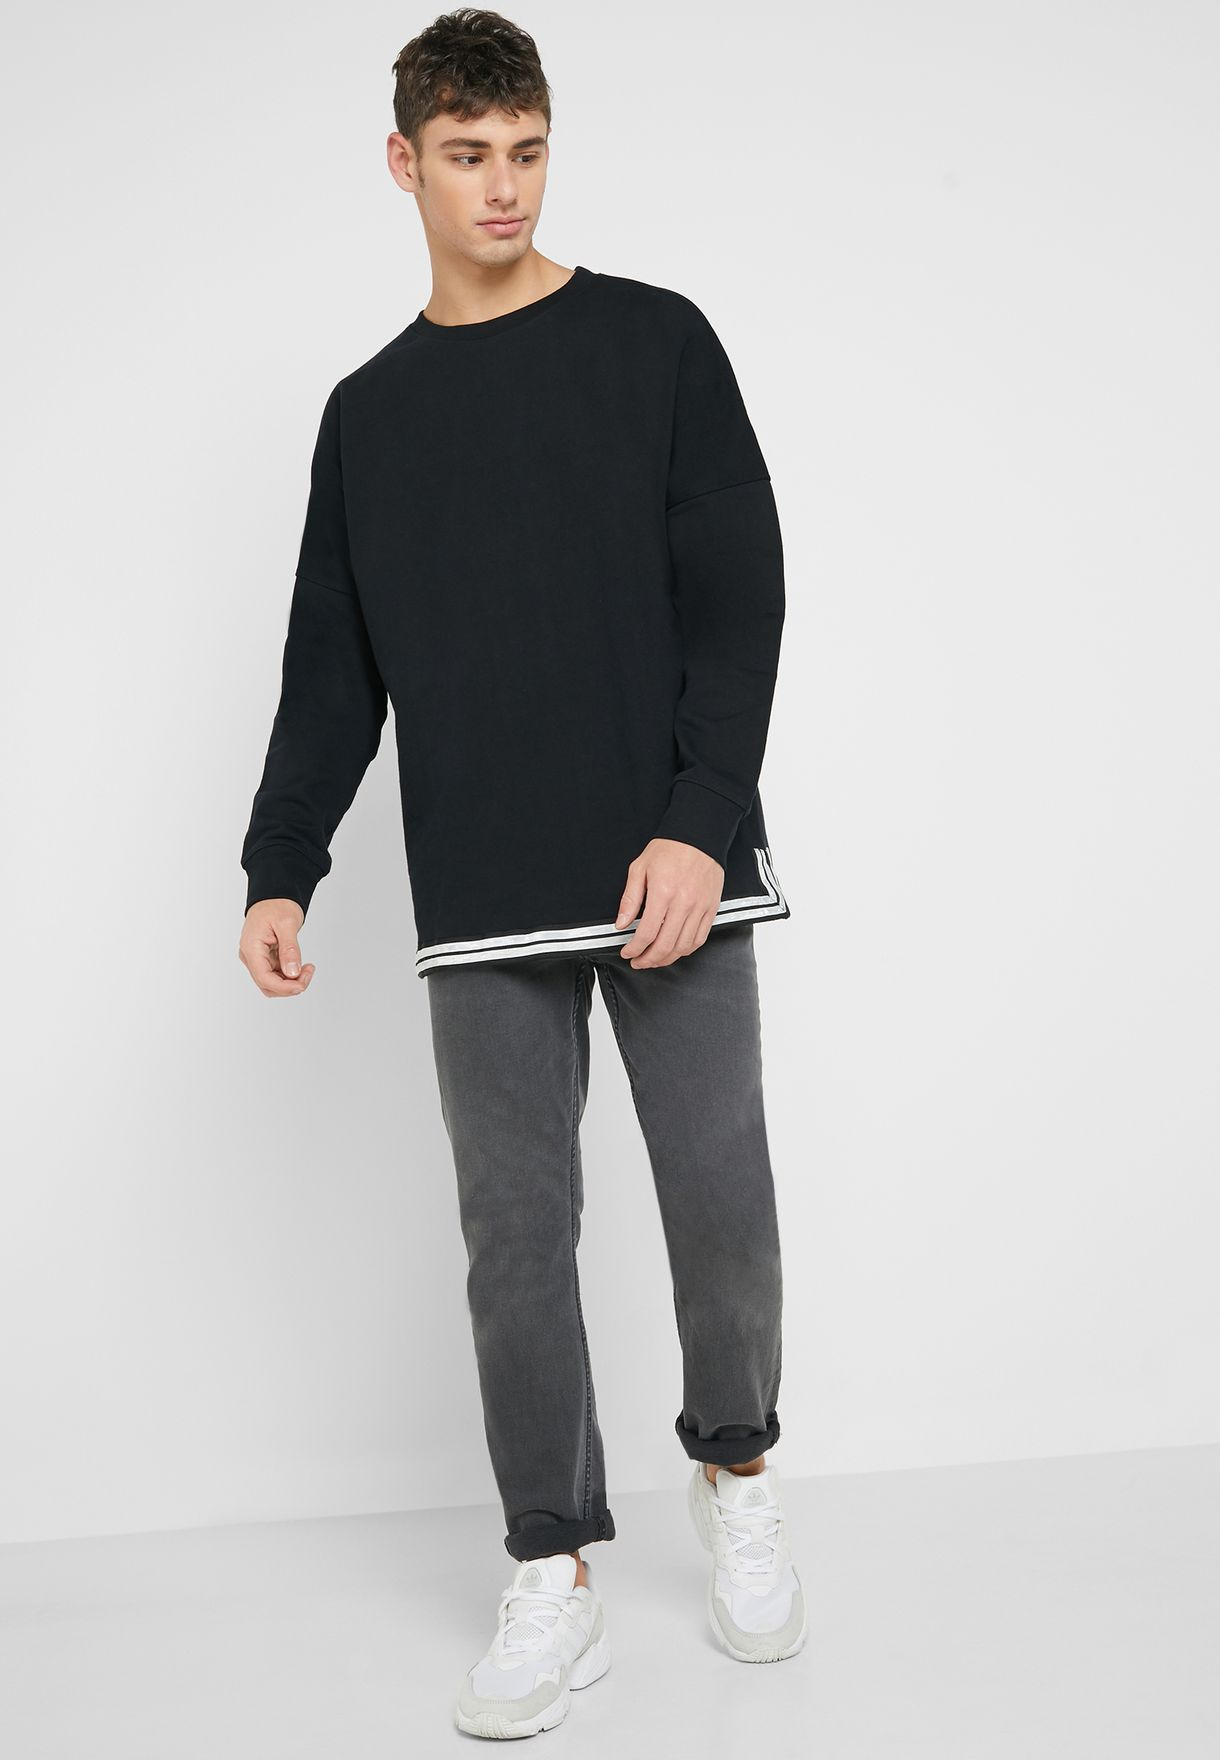 Drop Shoulder Sweatshirt